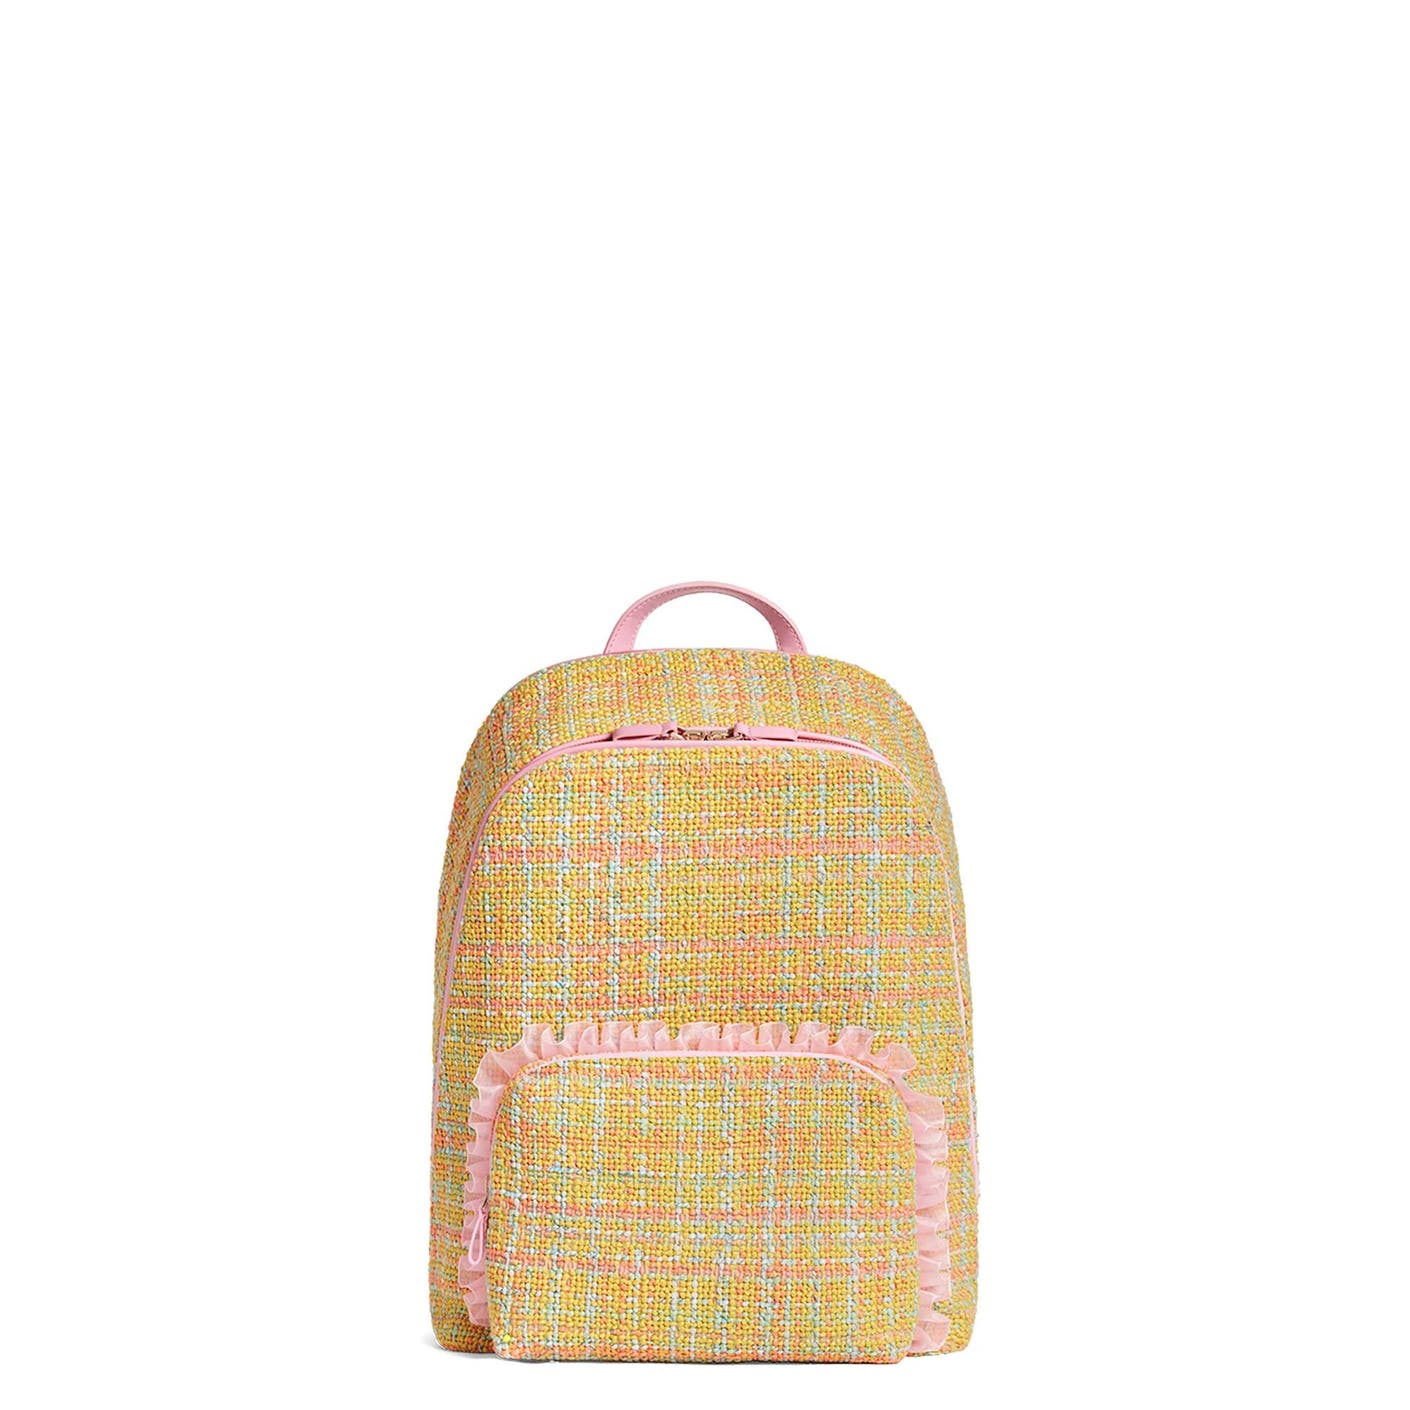 The Front Pocket Backpack by Tia Adeola